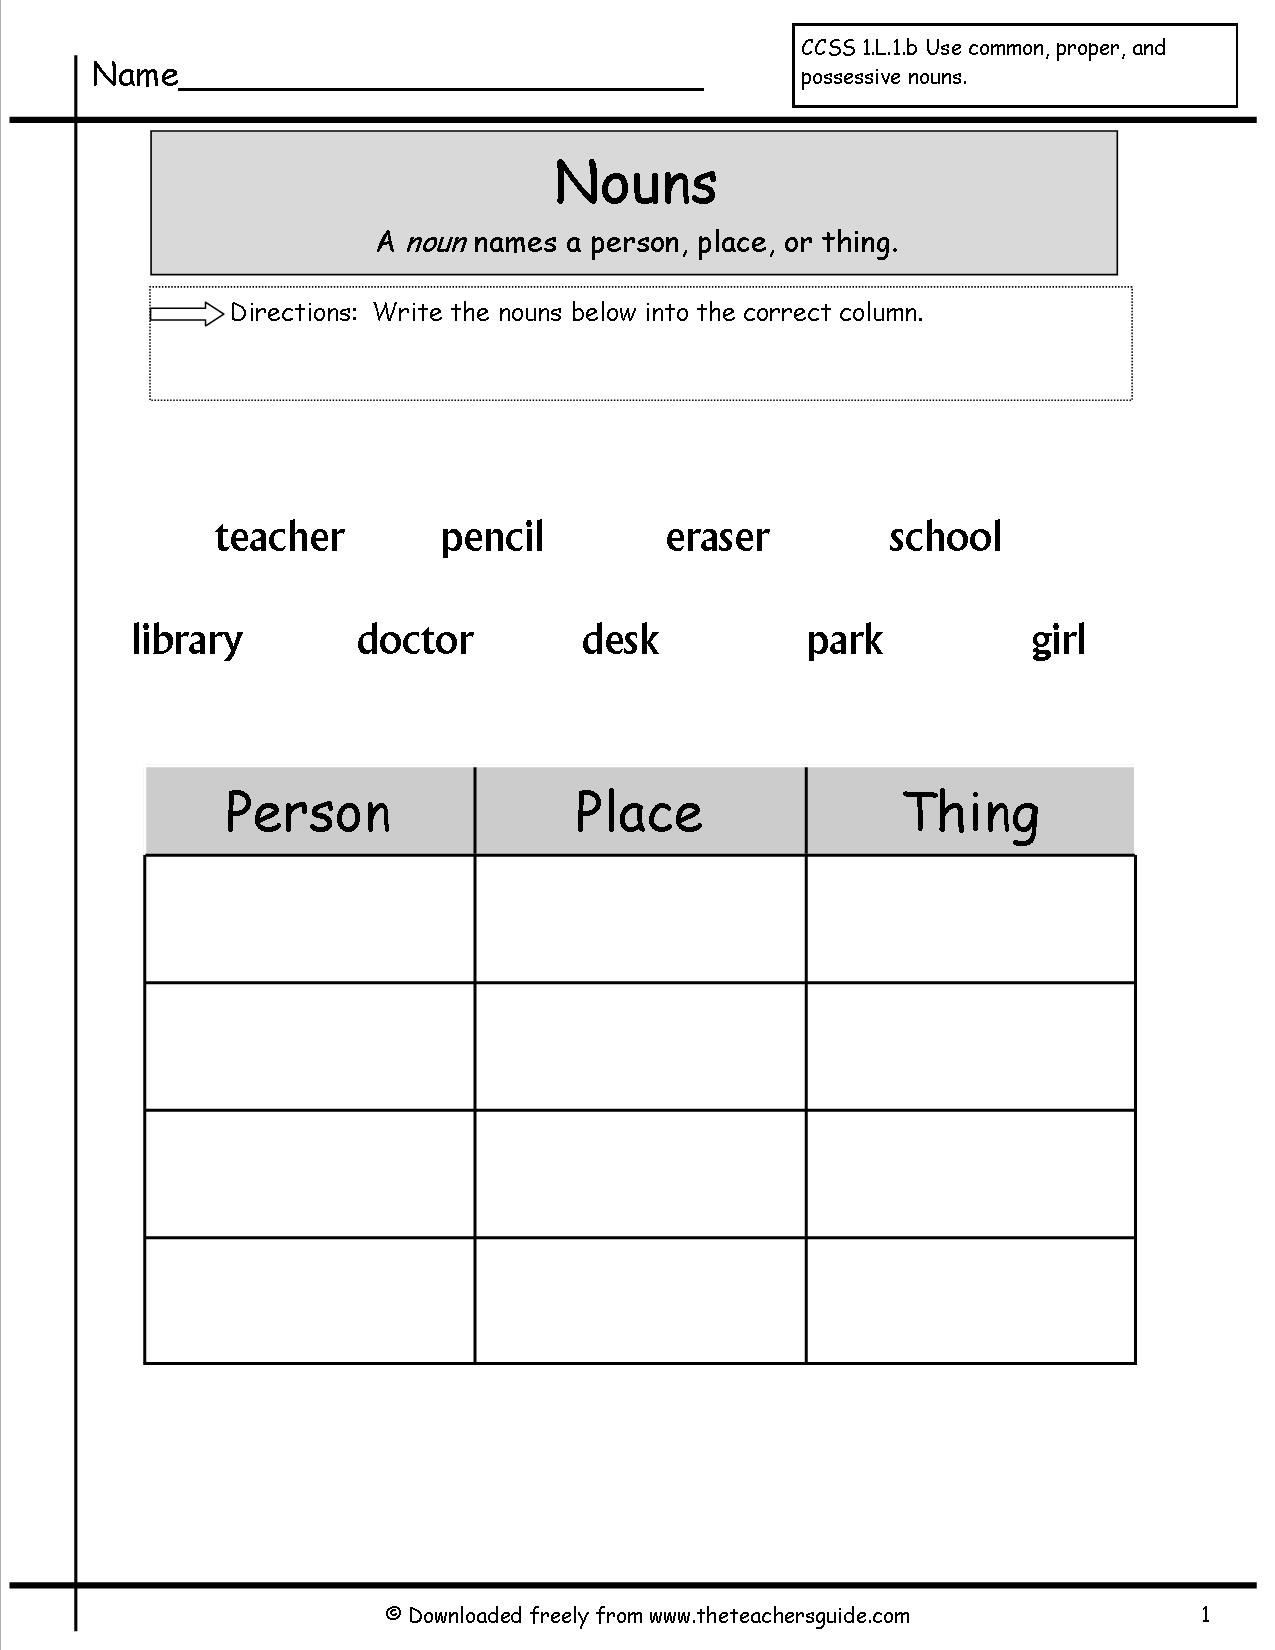 Ck Worksheets for 1st Grade Everyd Winter Wonderland Coloring Pages English Worksheets